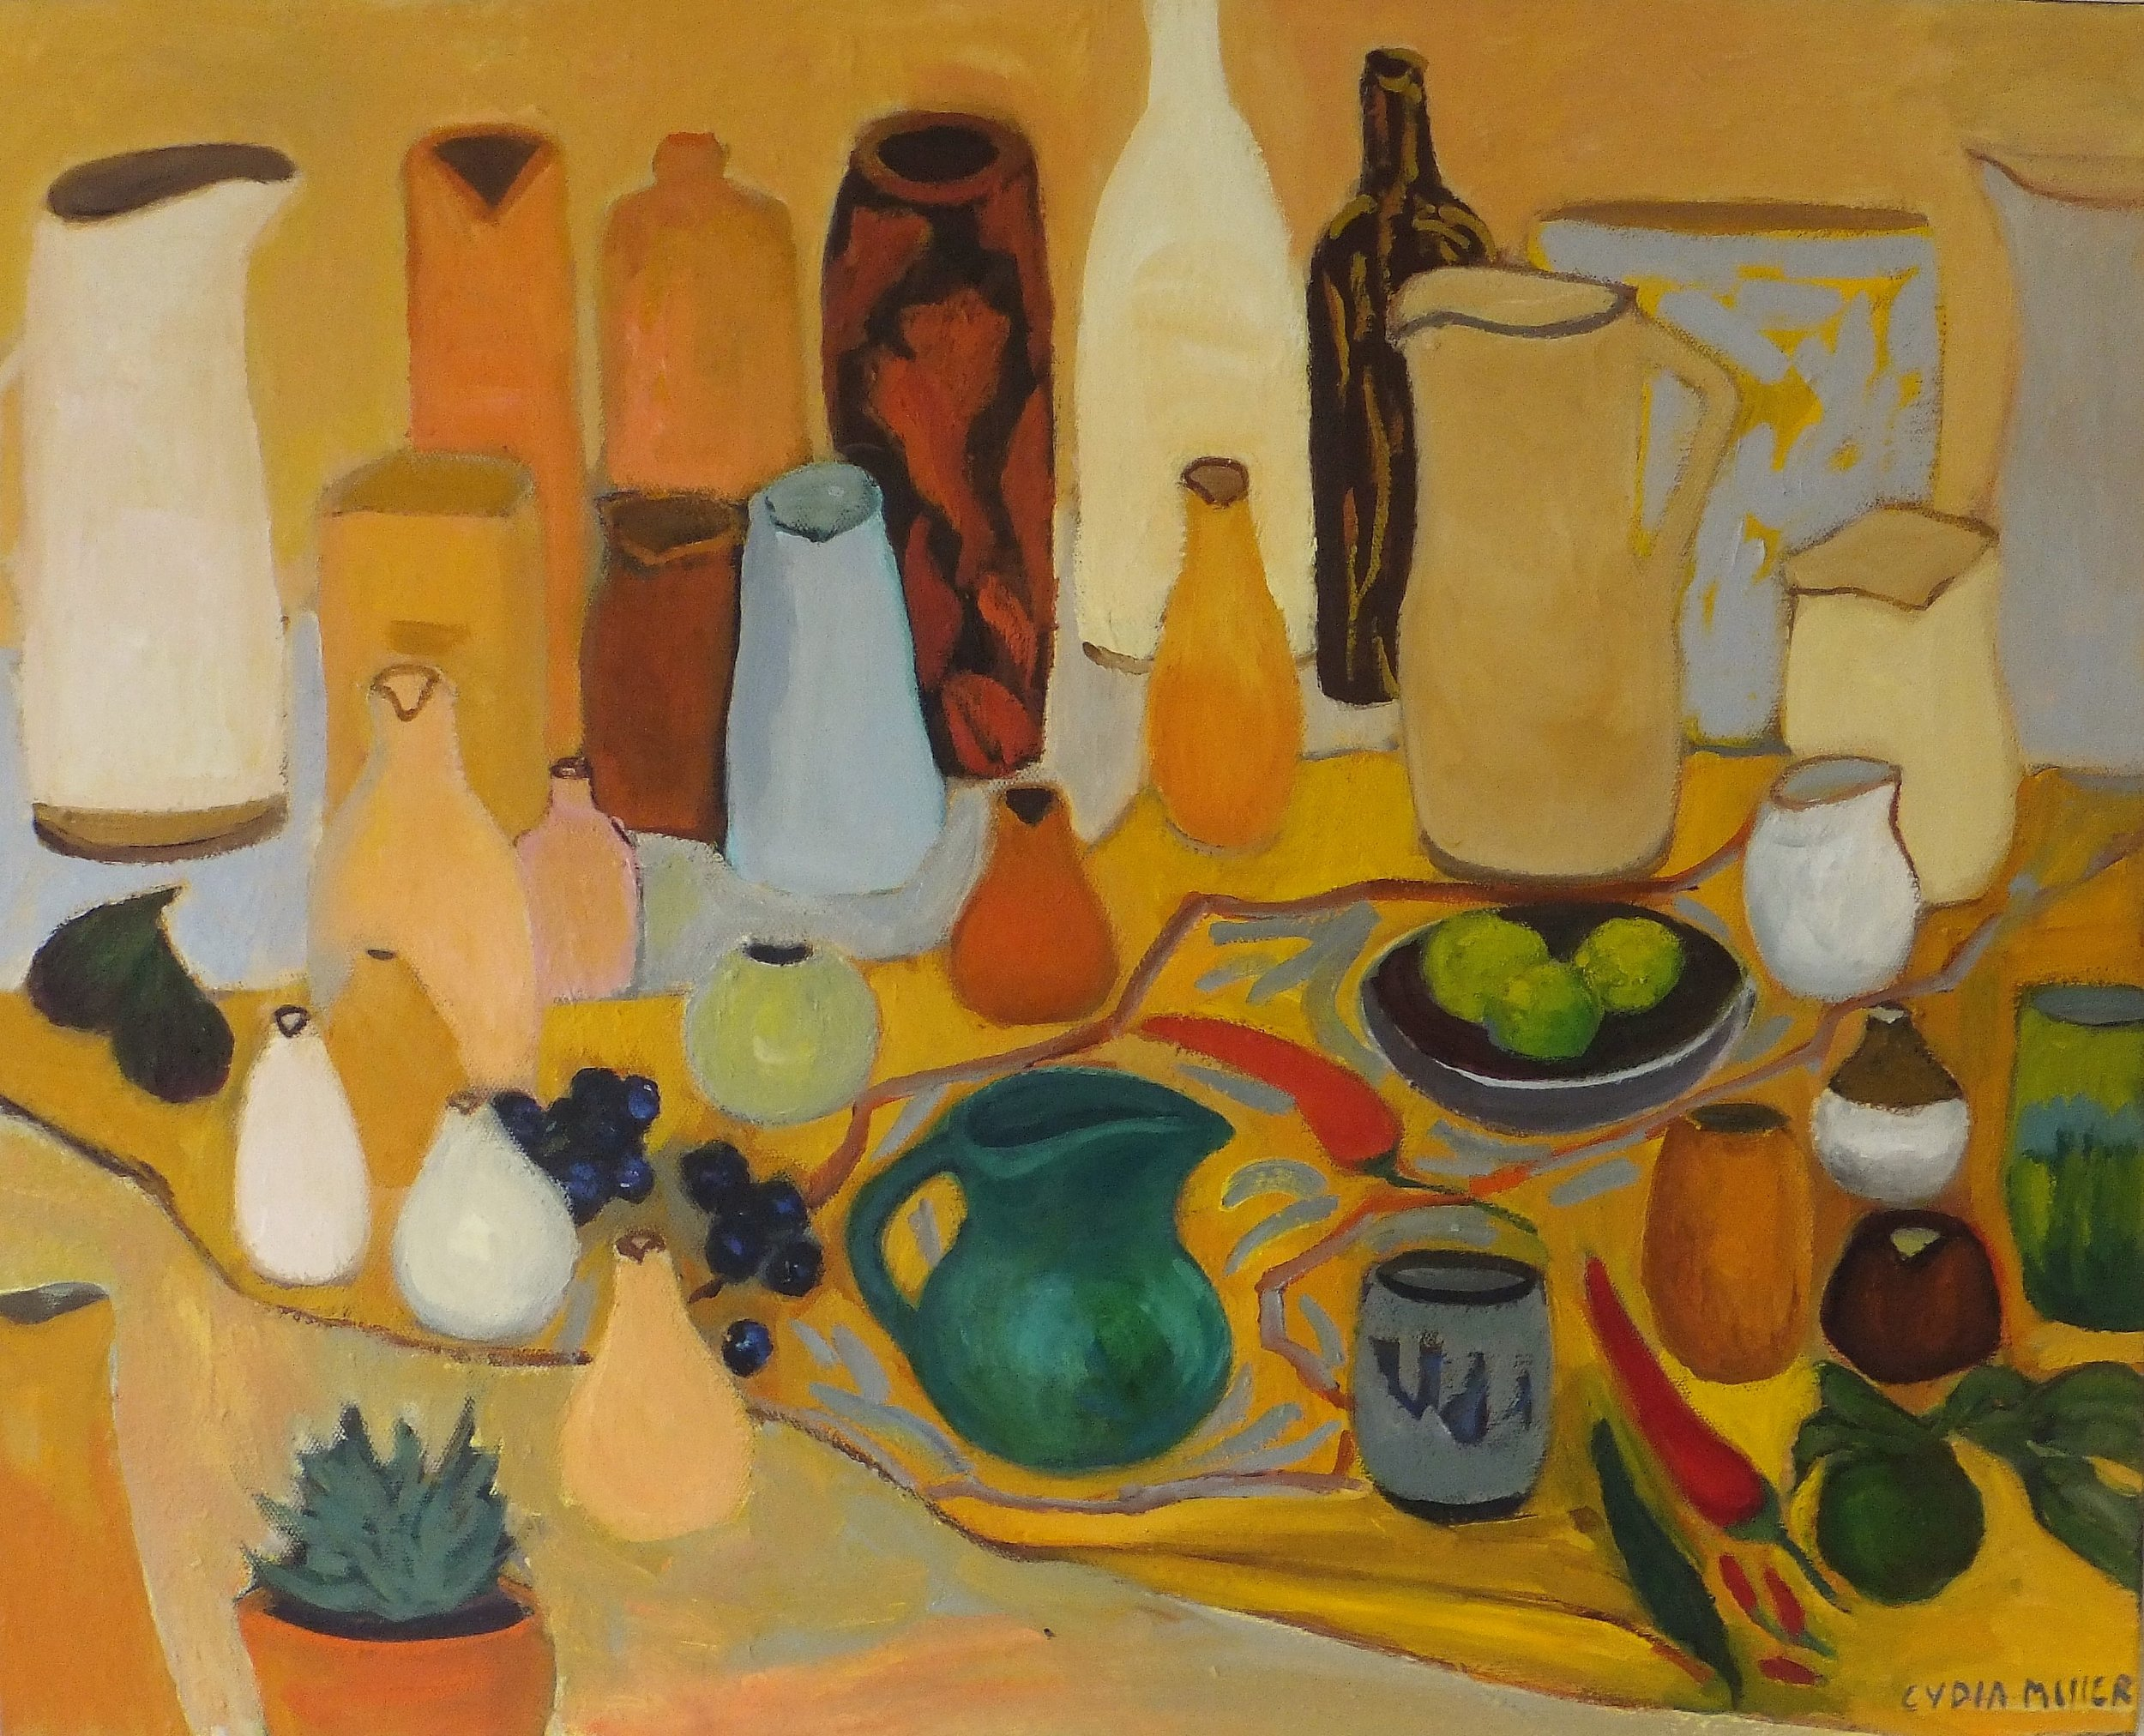 Lydia Miller, Still-Life with green jug, 2018 oil on canvas, 62 x 76cm $850.00 AVAILABLE contact info@gallery139.com.au